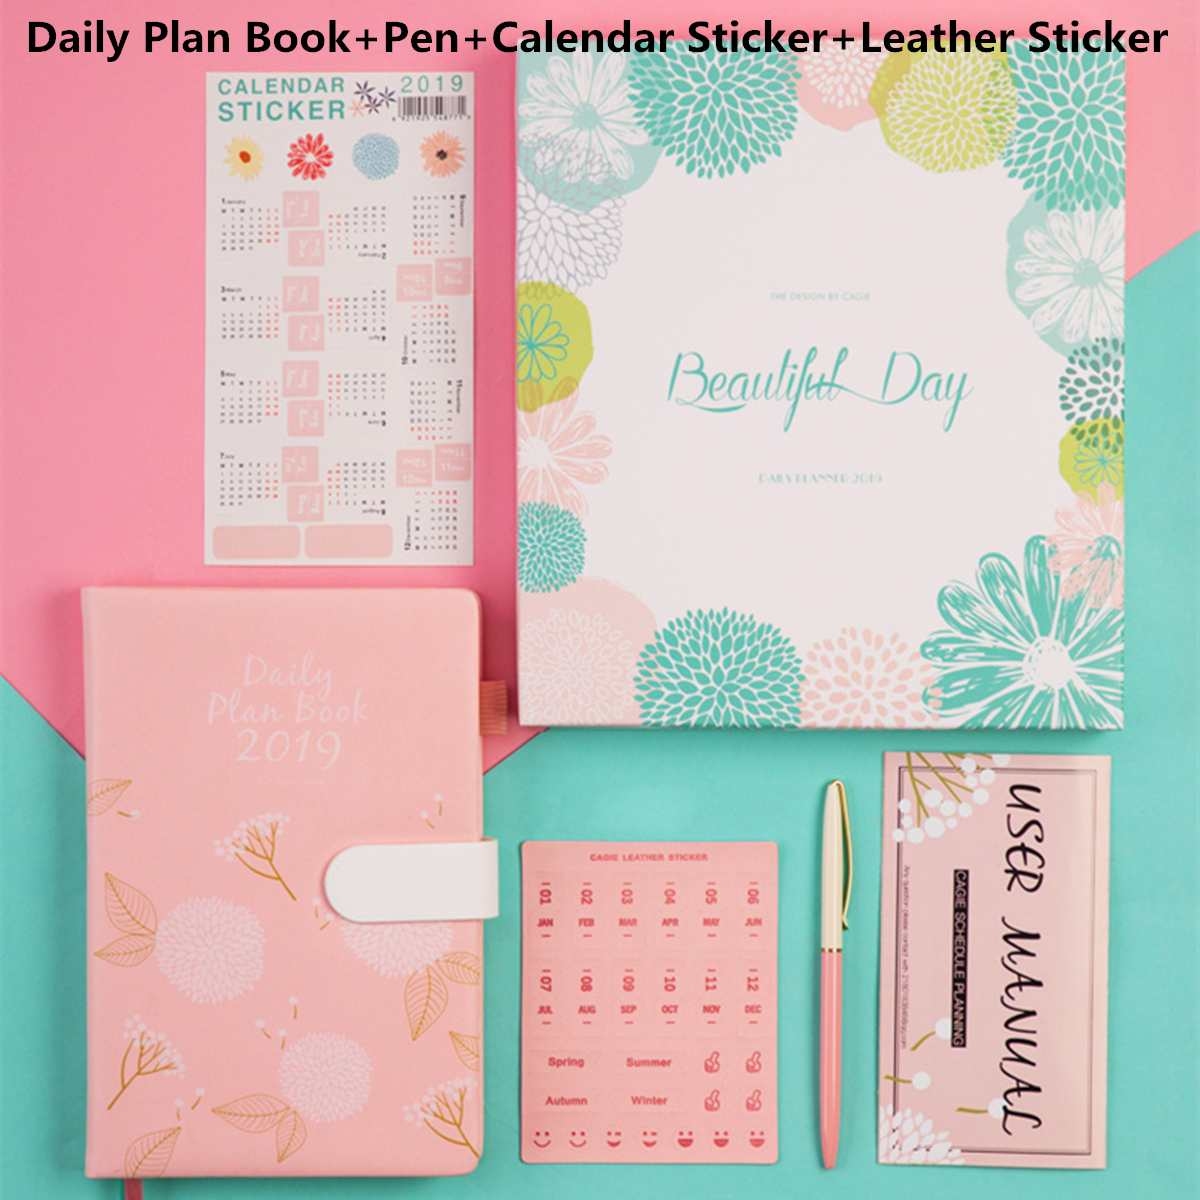 2019 Notebook Cartoon Cute Journal Diary Planner Notepad for Kids Gift Writing Pads Stationery Flower Notebooks Scheduler A5/A62019 Notebook Cartoon Cute Journal Diary Planner Notepad for Kids Gift Writing Pads Stationery Flower Notebooks Scheduler A5/A6